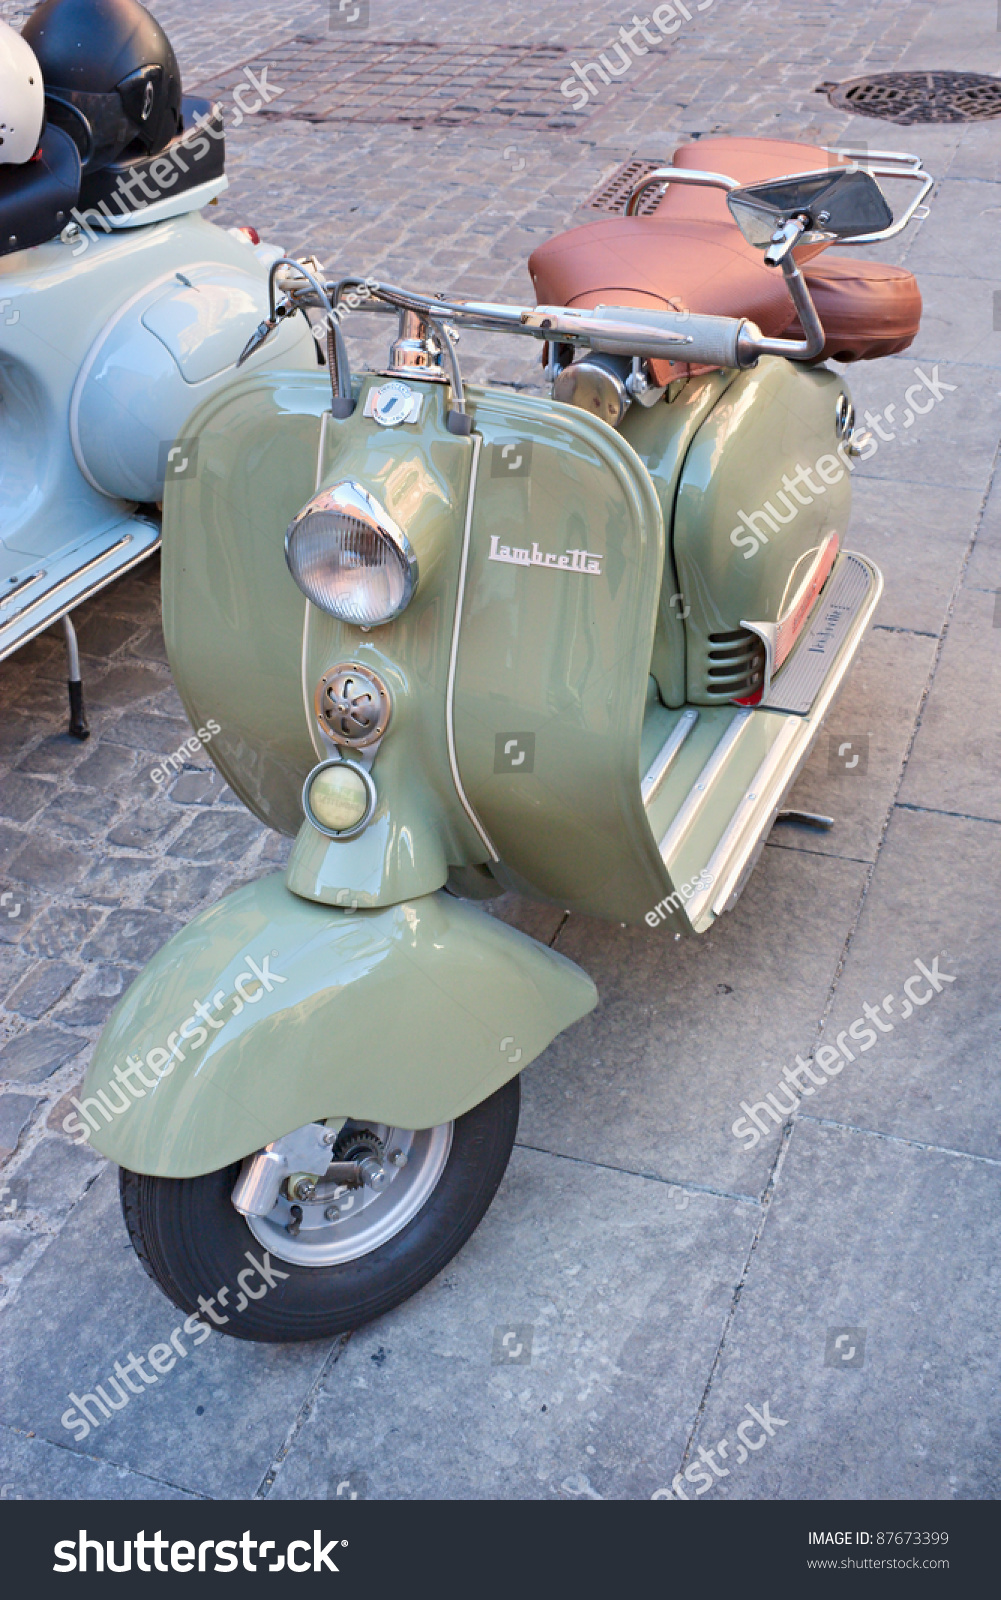 imola bo italy october 8 vintage scooter lambretta on. Black Bedroom Furniture Sets. Home Design Ideas